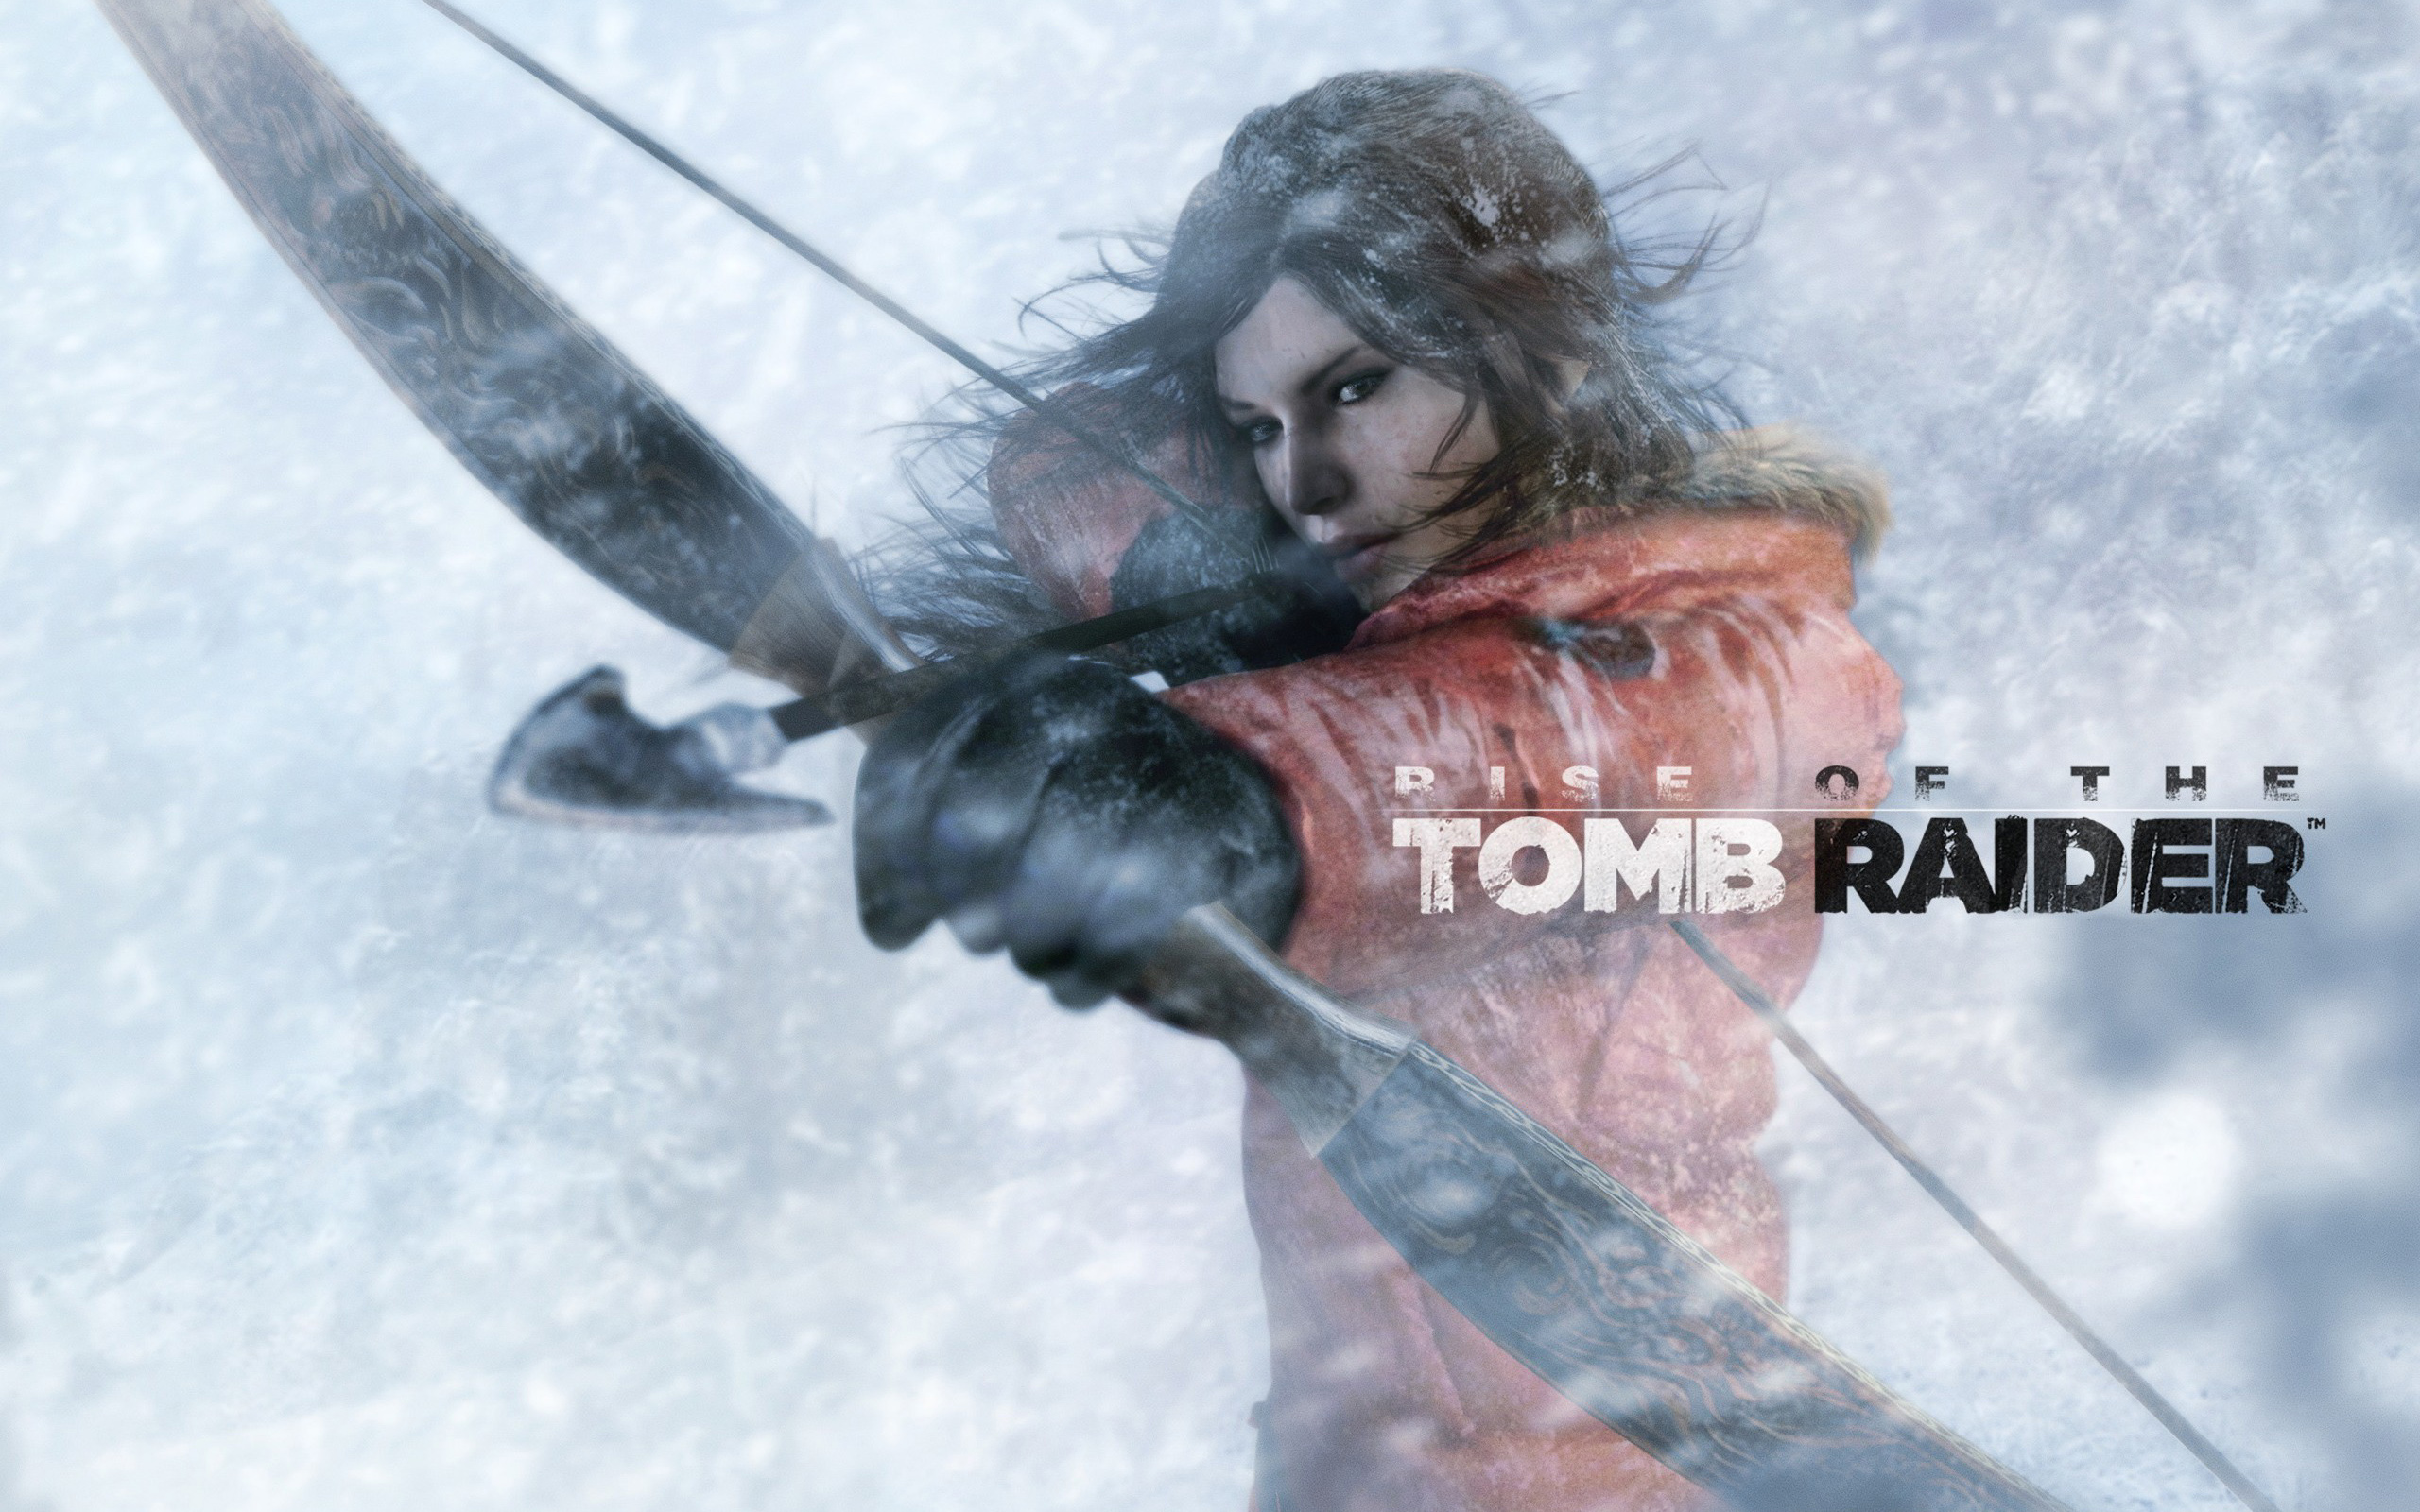 HD Wallpapers Rise of the Tomb Raider